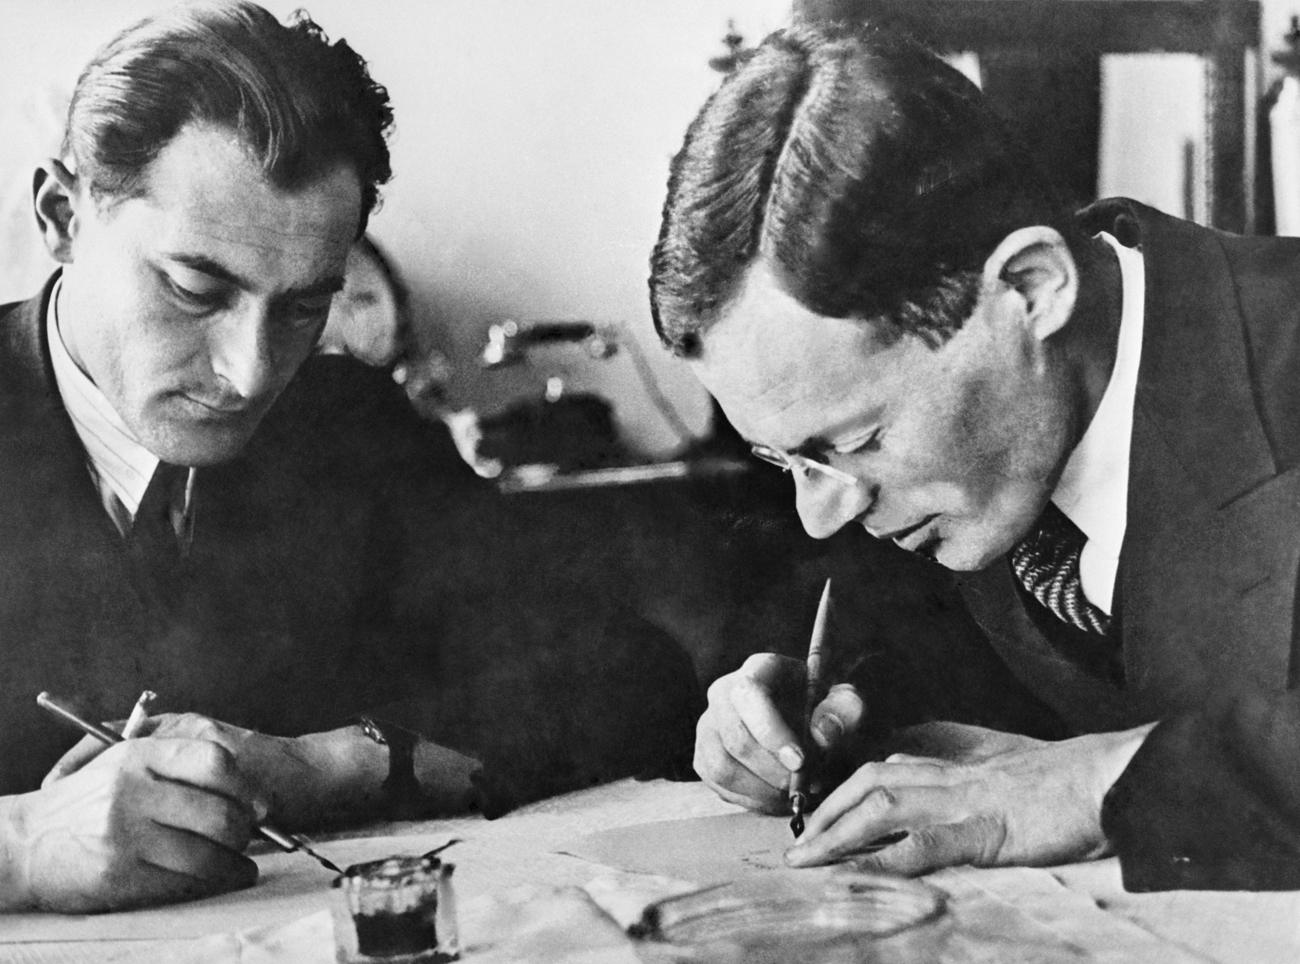 Russian/Soviet writers Ilya Ilf (R) and Yevgeny Petrov at work